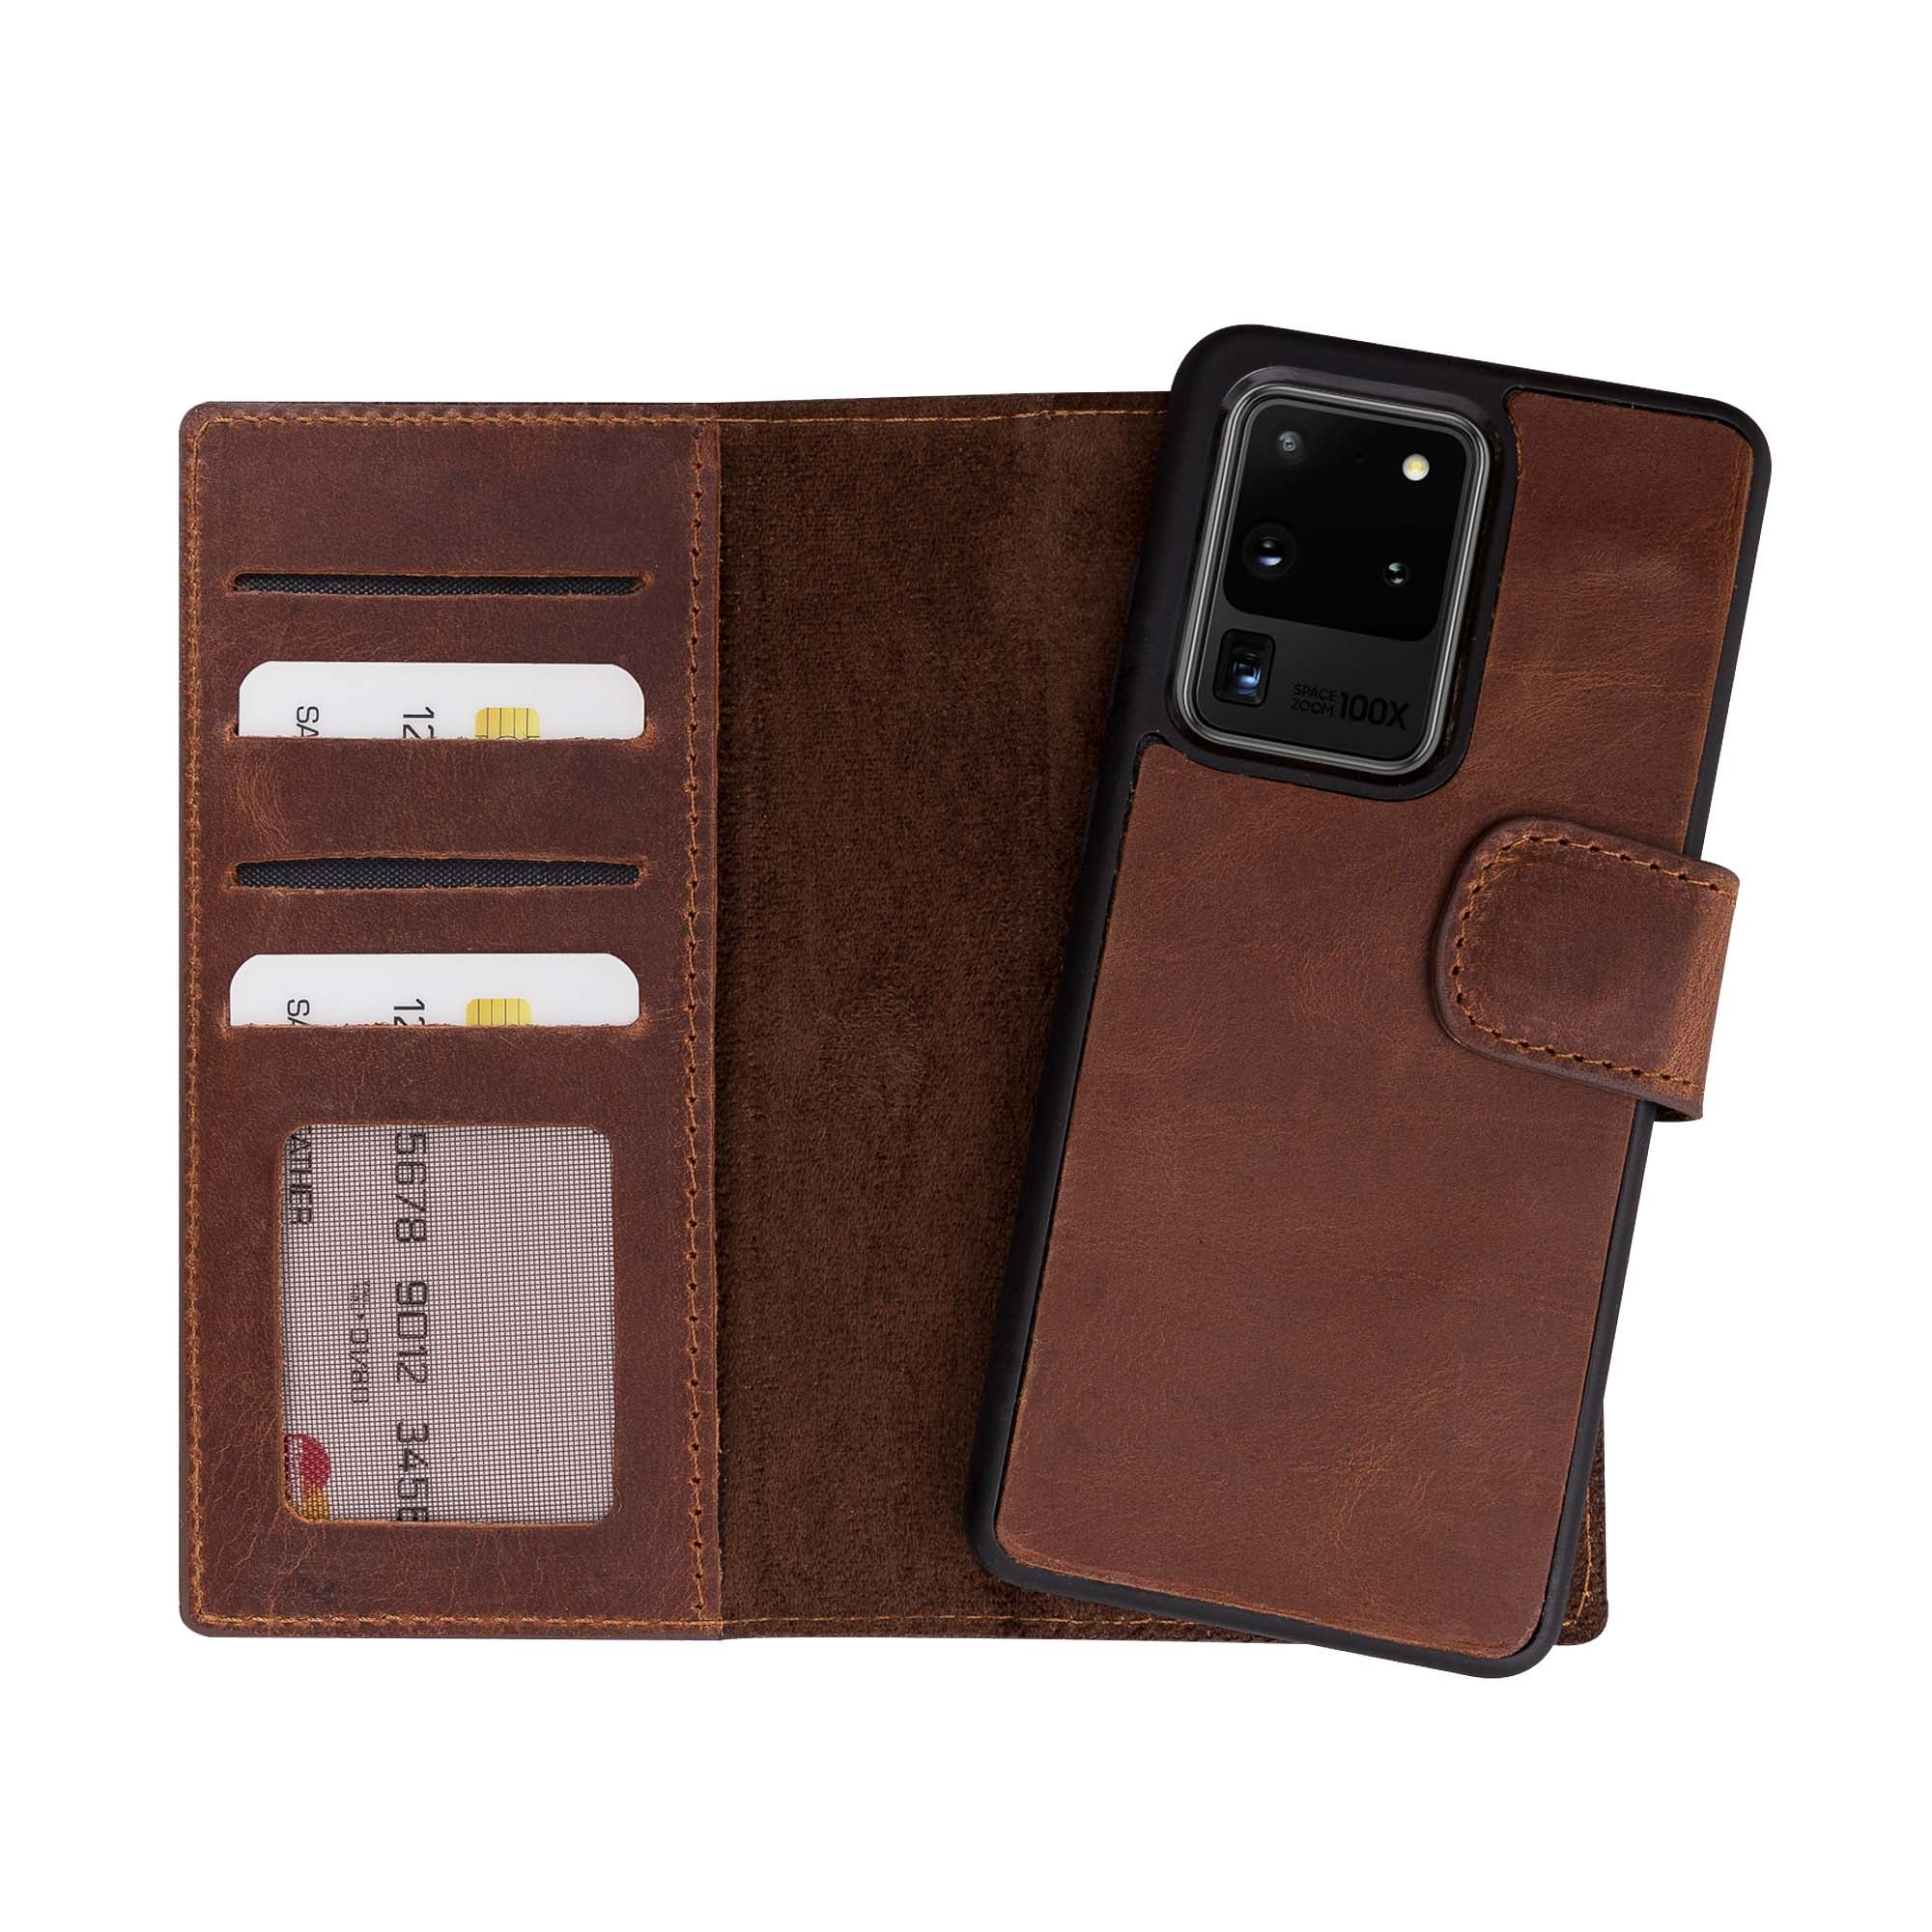 "Liluri Magnetic Detachable Leather Wallet Case for Samsung Galaxy S20 Ultra (6.9"") - BROWN - saracleather"